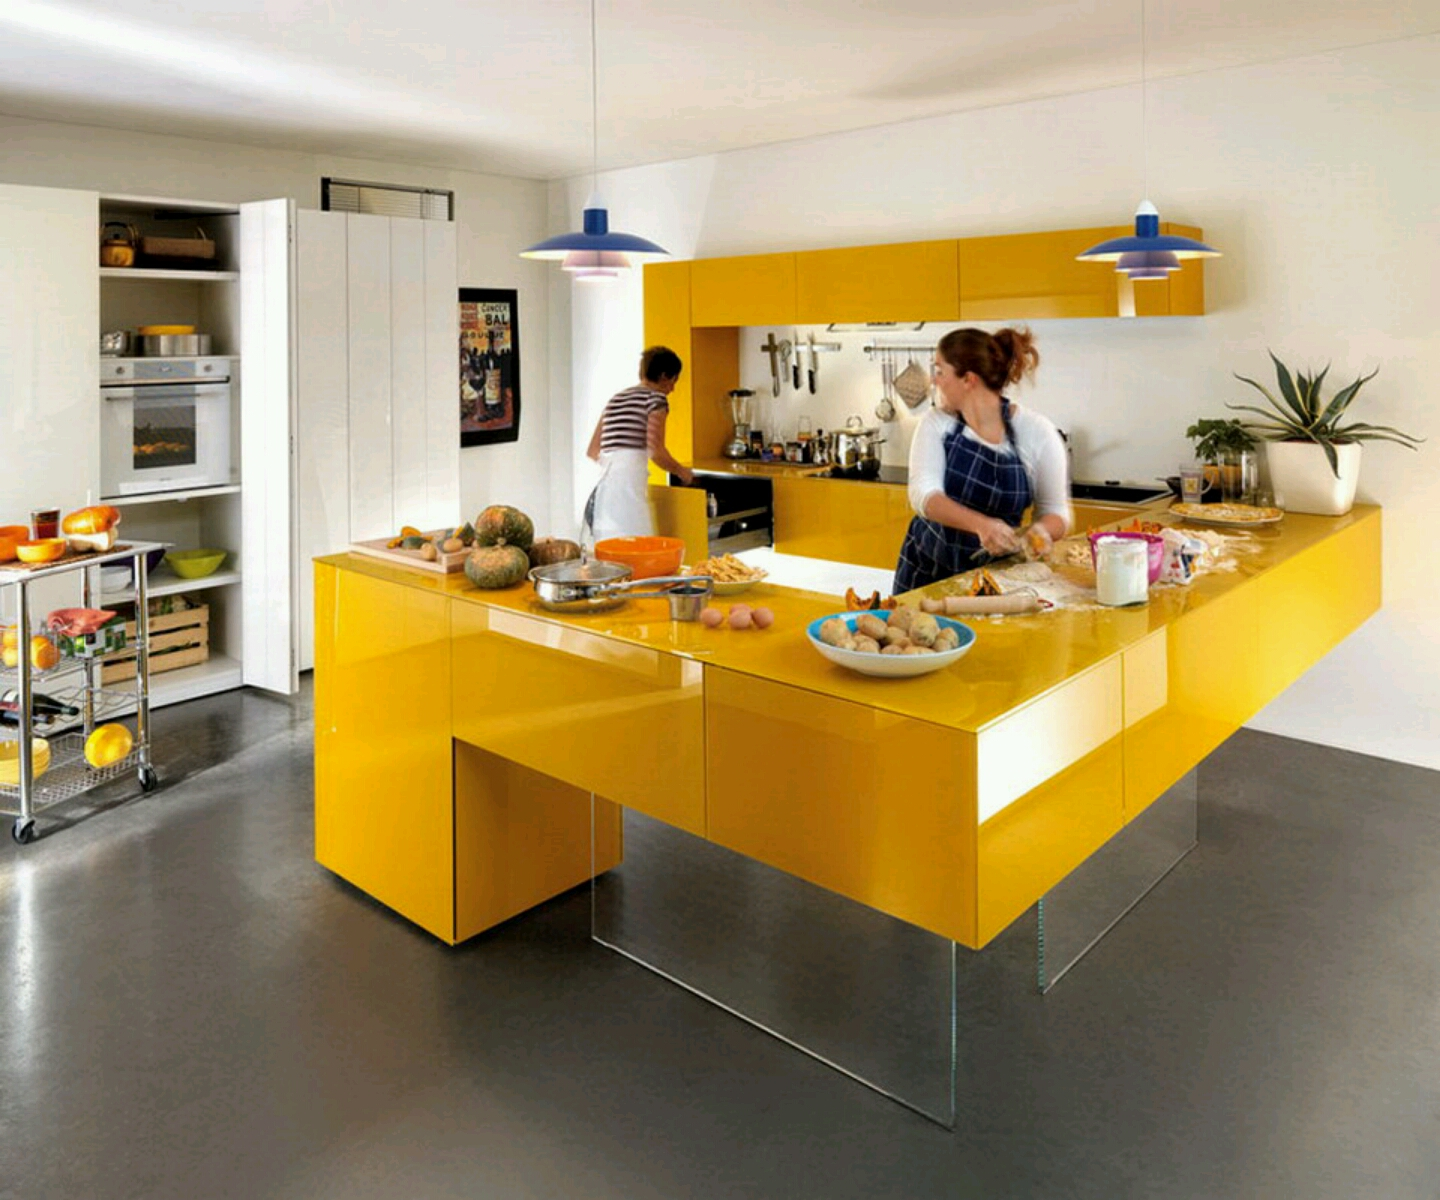 Modern kitchen cabinets designs ideas furniture gallery for Latest kitchen cabinets